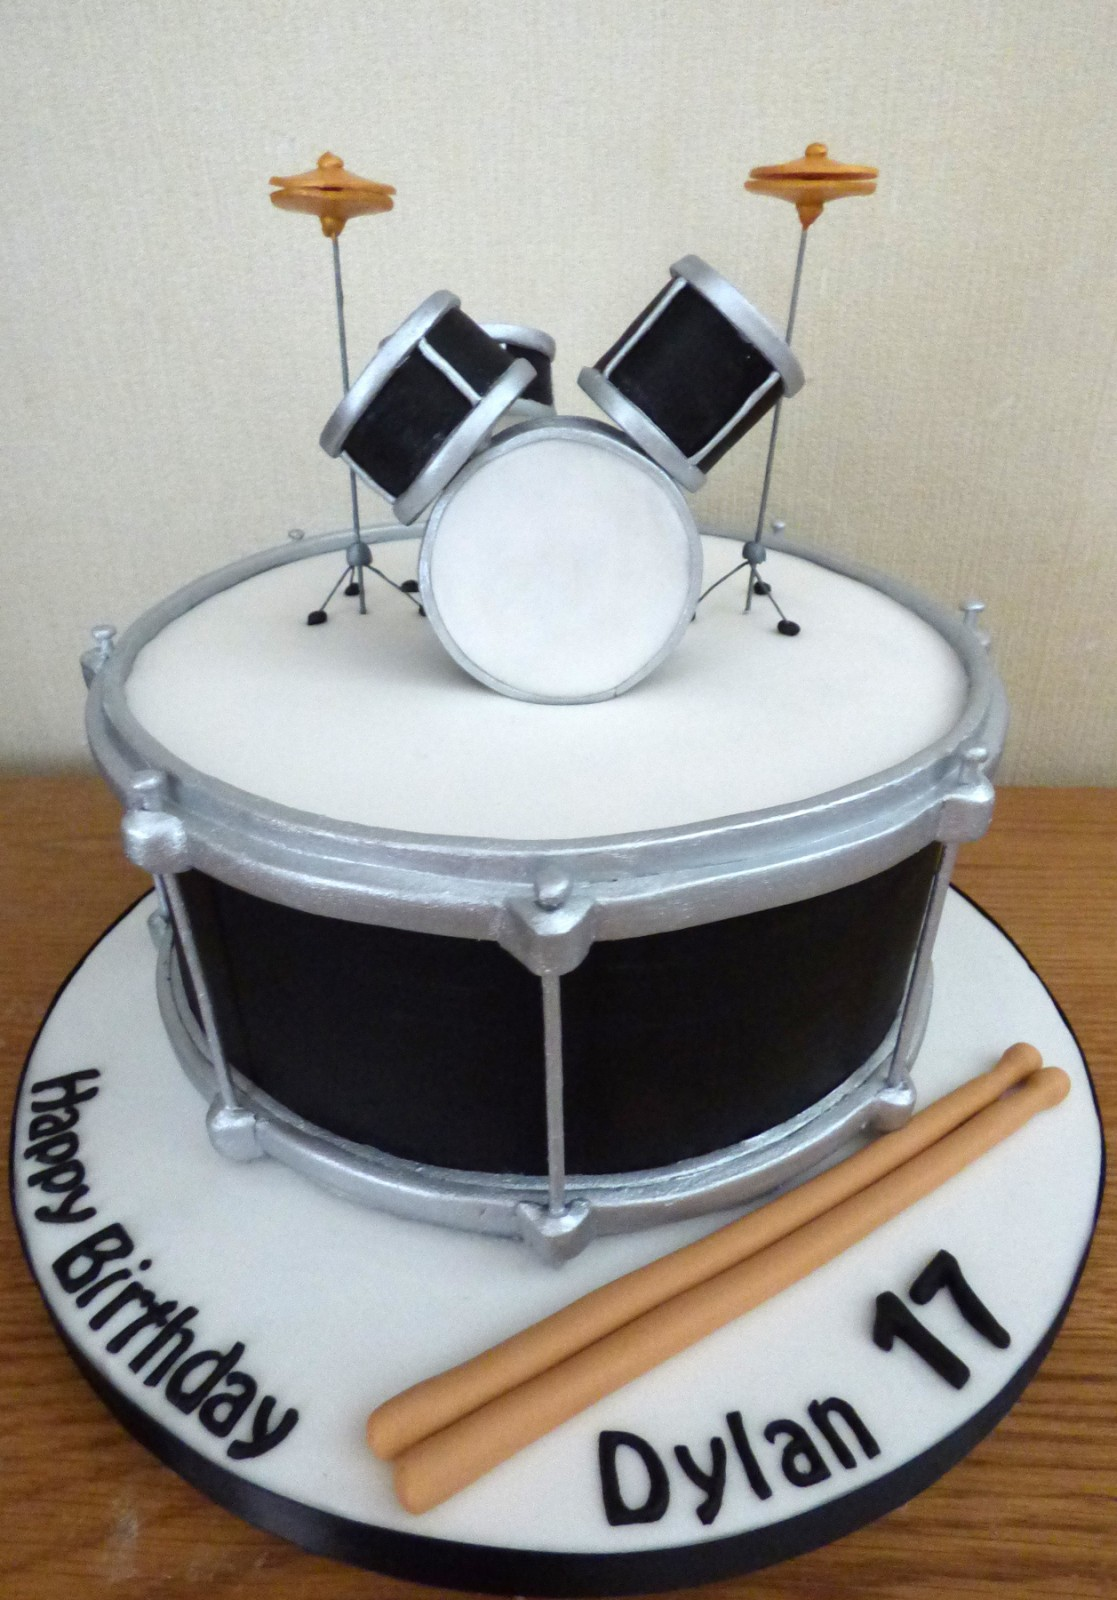 Fine Drummers Drum Kit Birthday Cake Susies Cakes Funny Birthday Cards Online Bapapcheapnameinfo